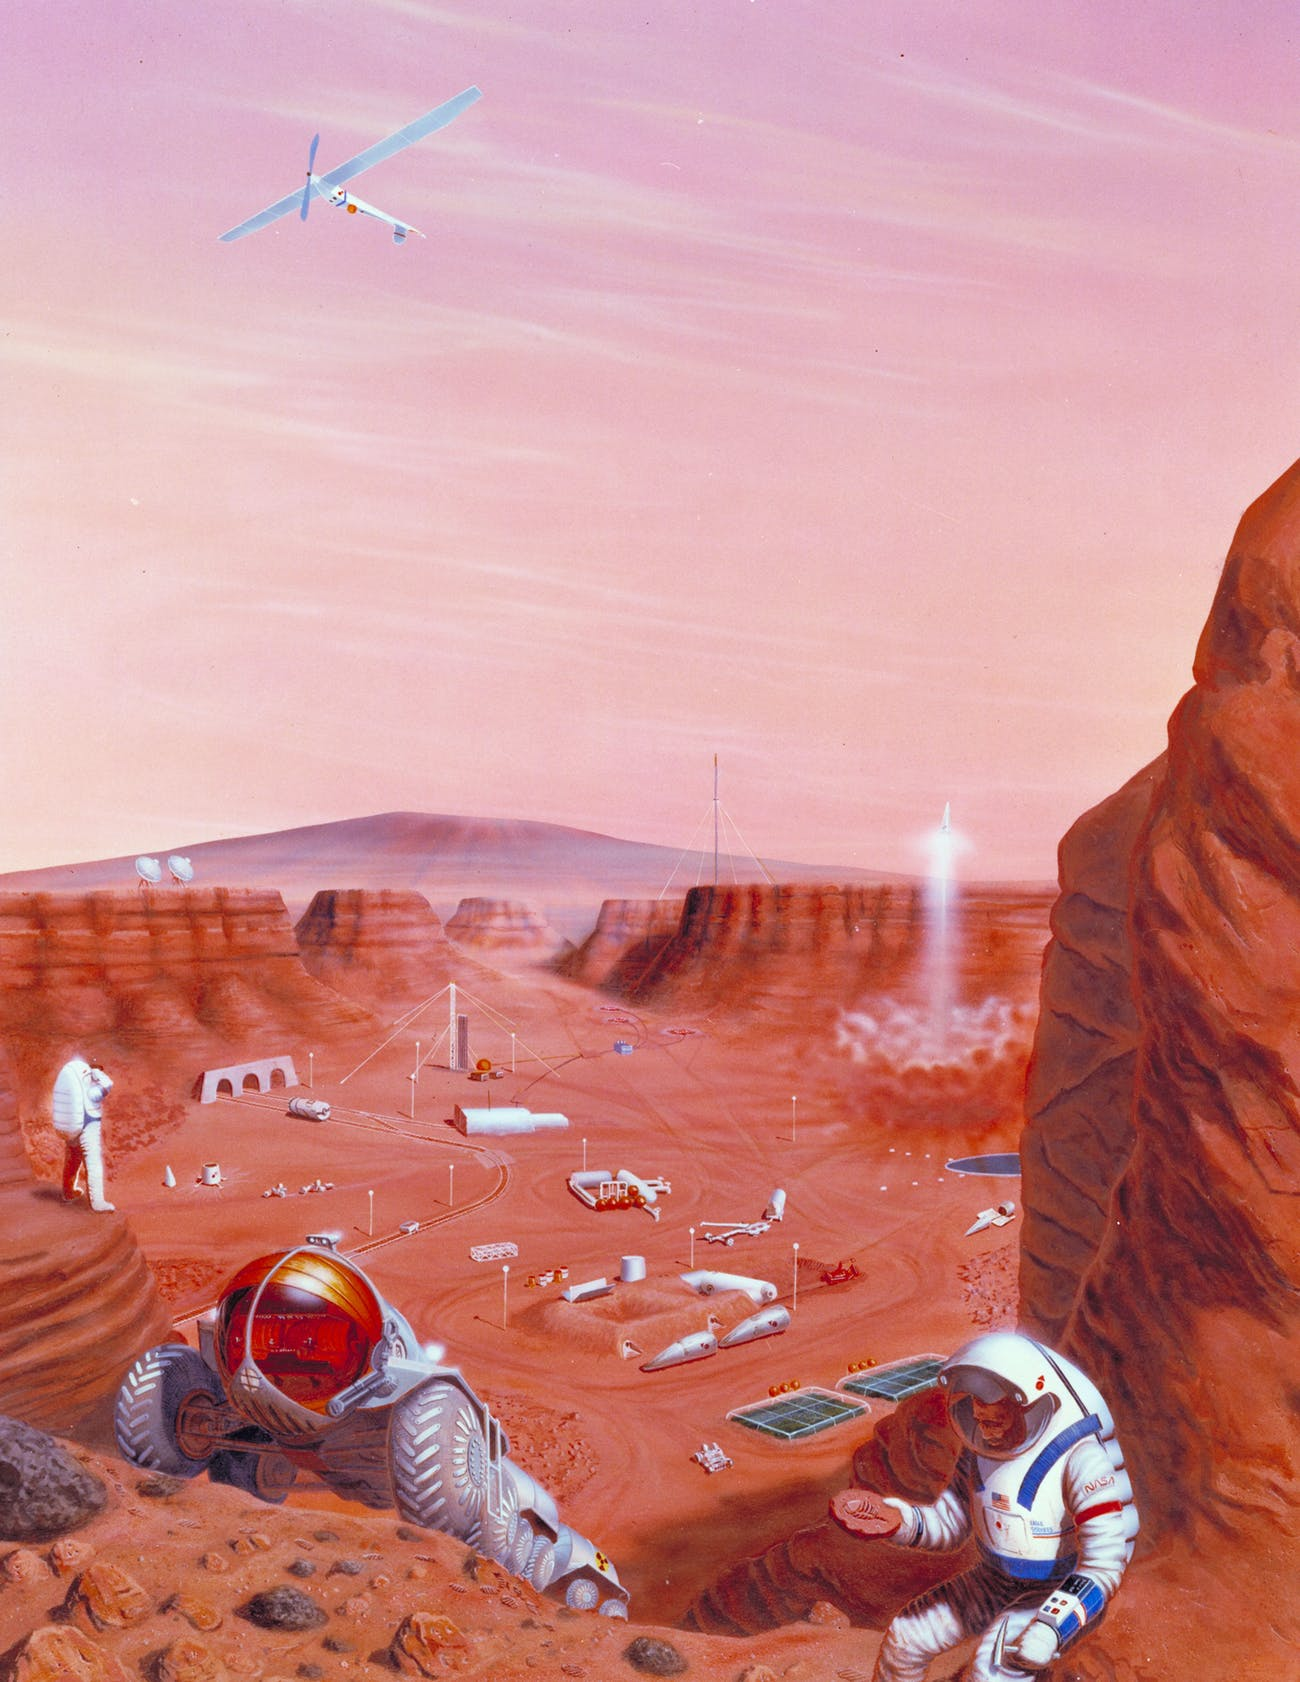 Artist's concept of possible exploration of the surface of Mars.